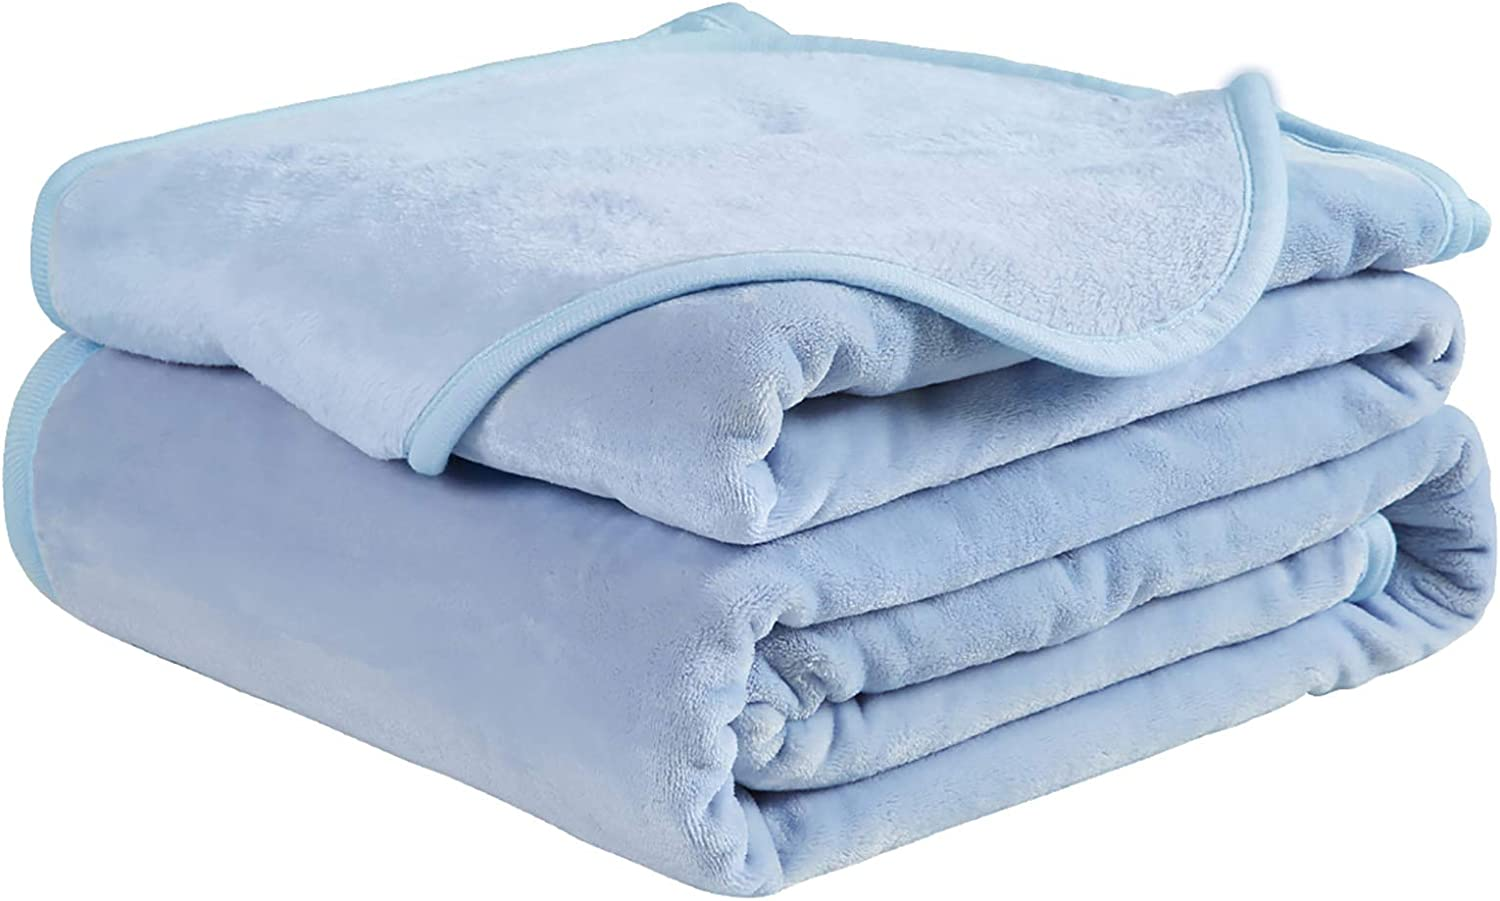 Soft Throw Blanket All Season Winter Warm Microplush Lightweight Thermal Fleece Blankets for Couch Bed Sofa,50x61 Inches,White: Kitchen & Dining